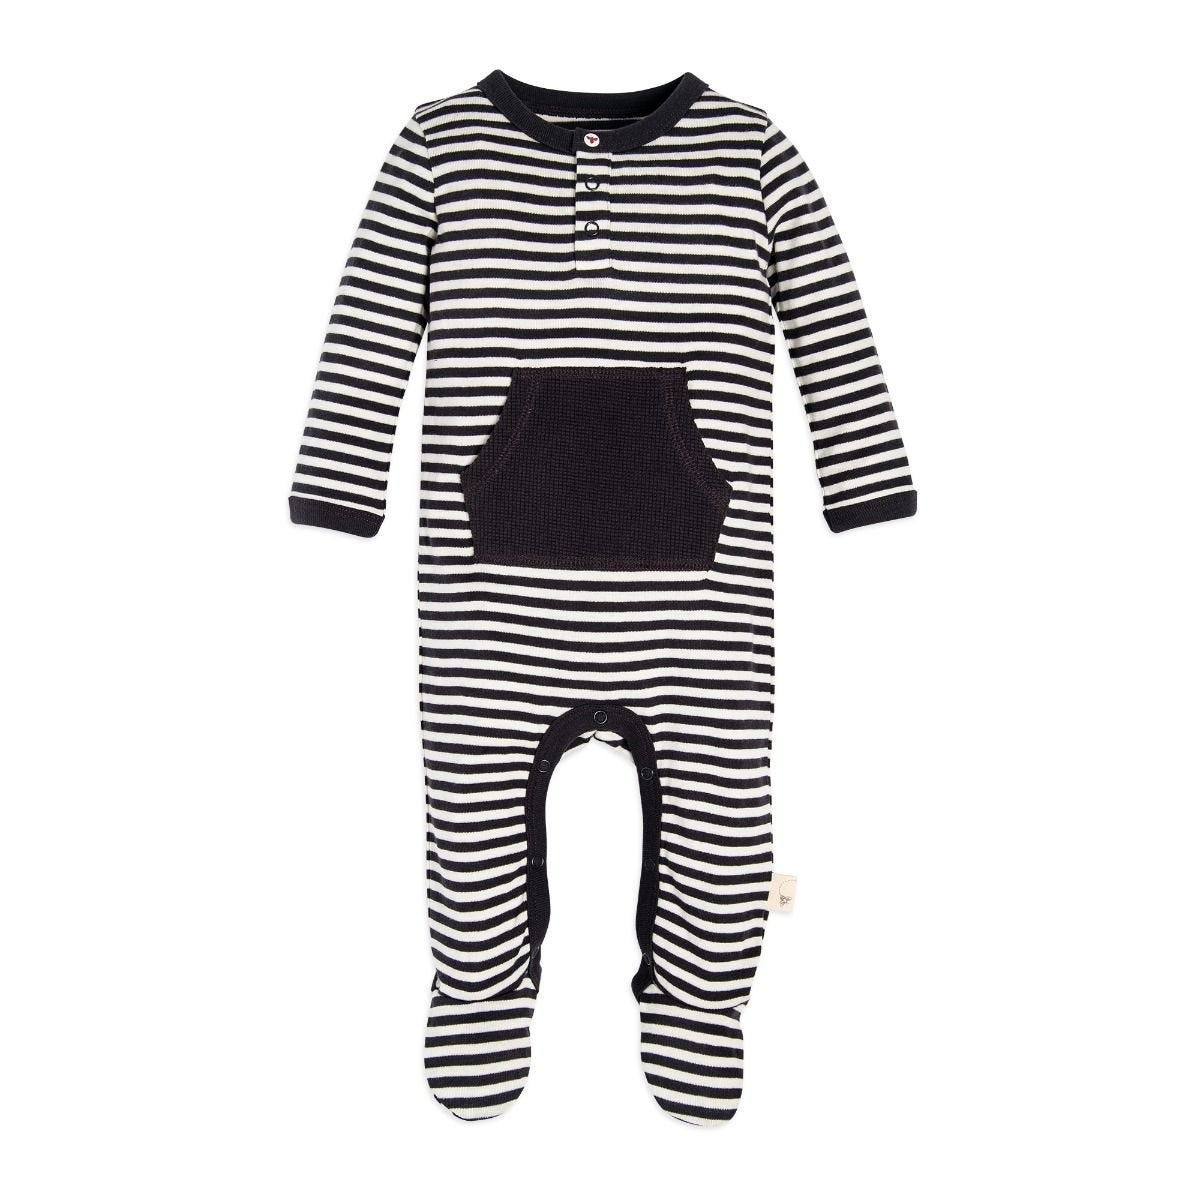 bcaab598d Candy Cane Stripe Footed Organic Baby One Piece Jumpsuit   Hat